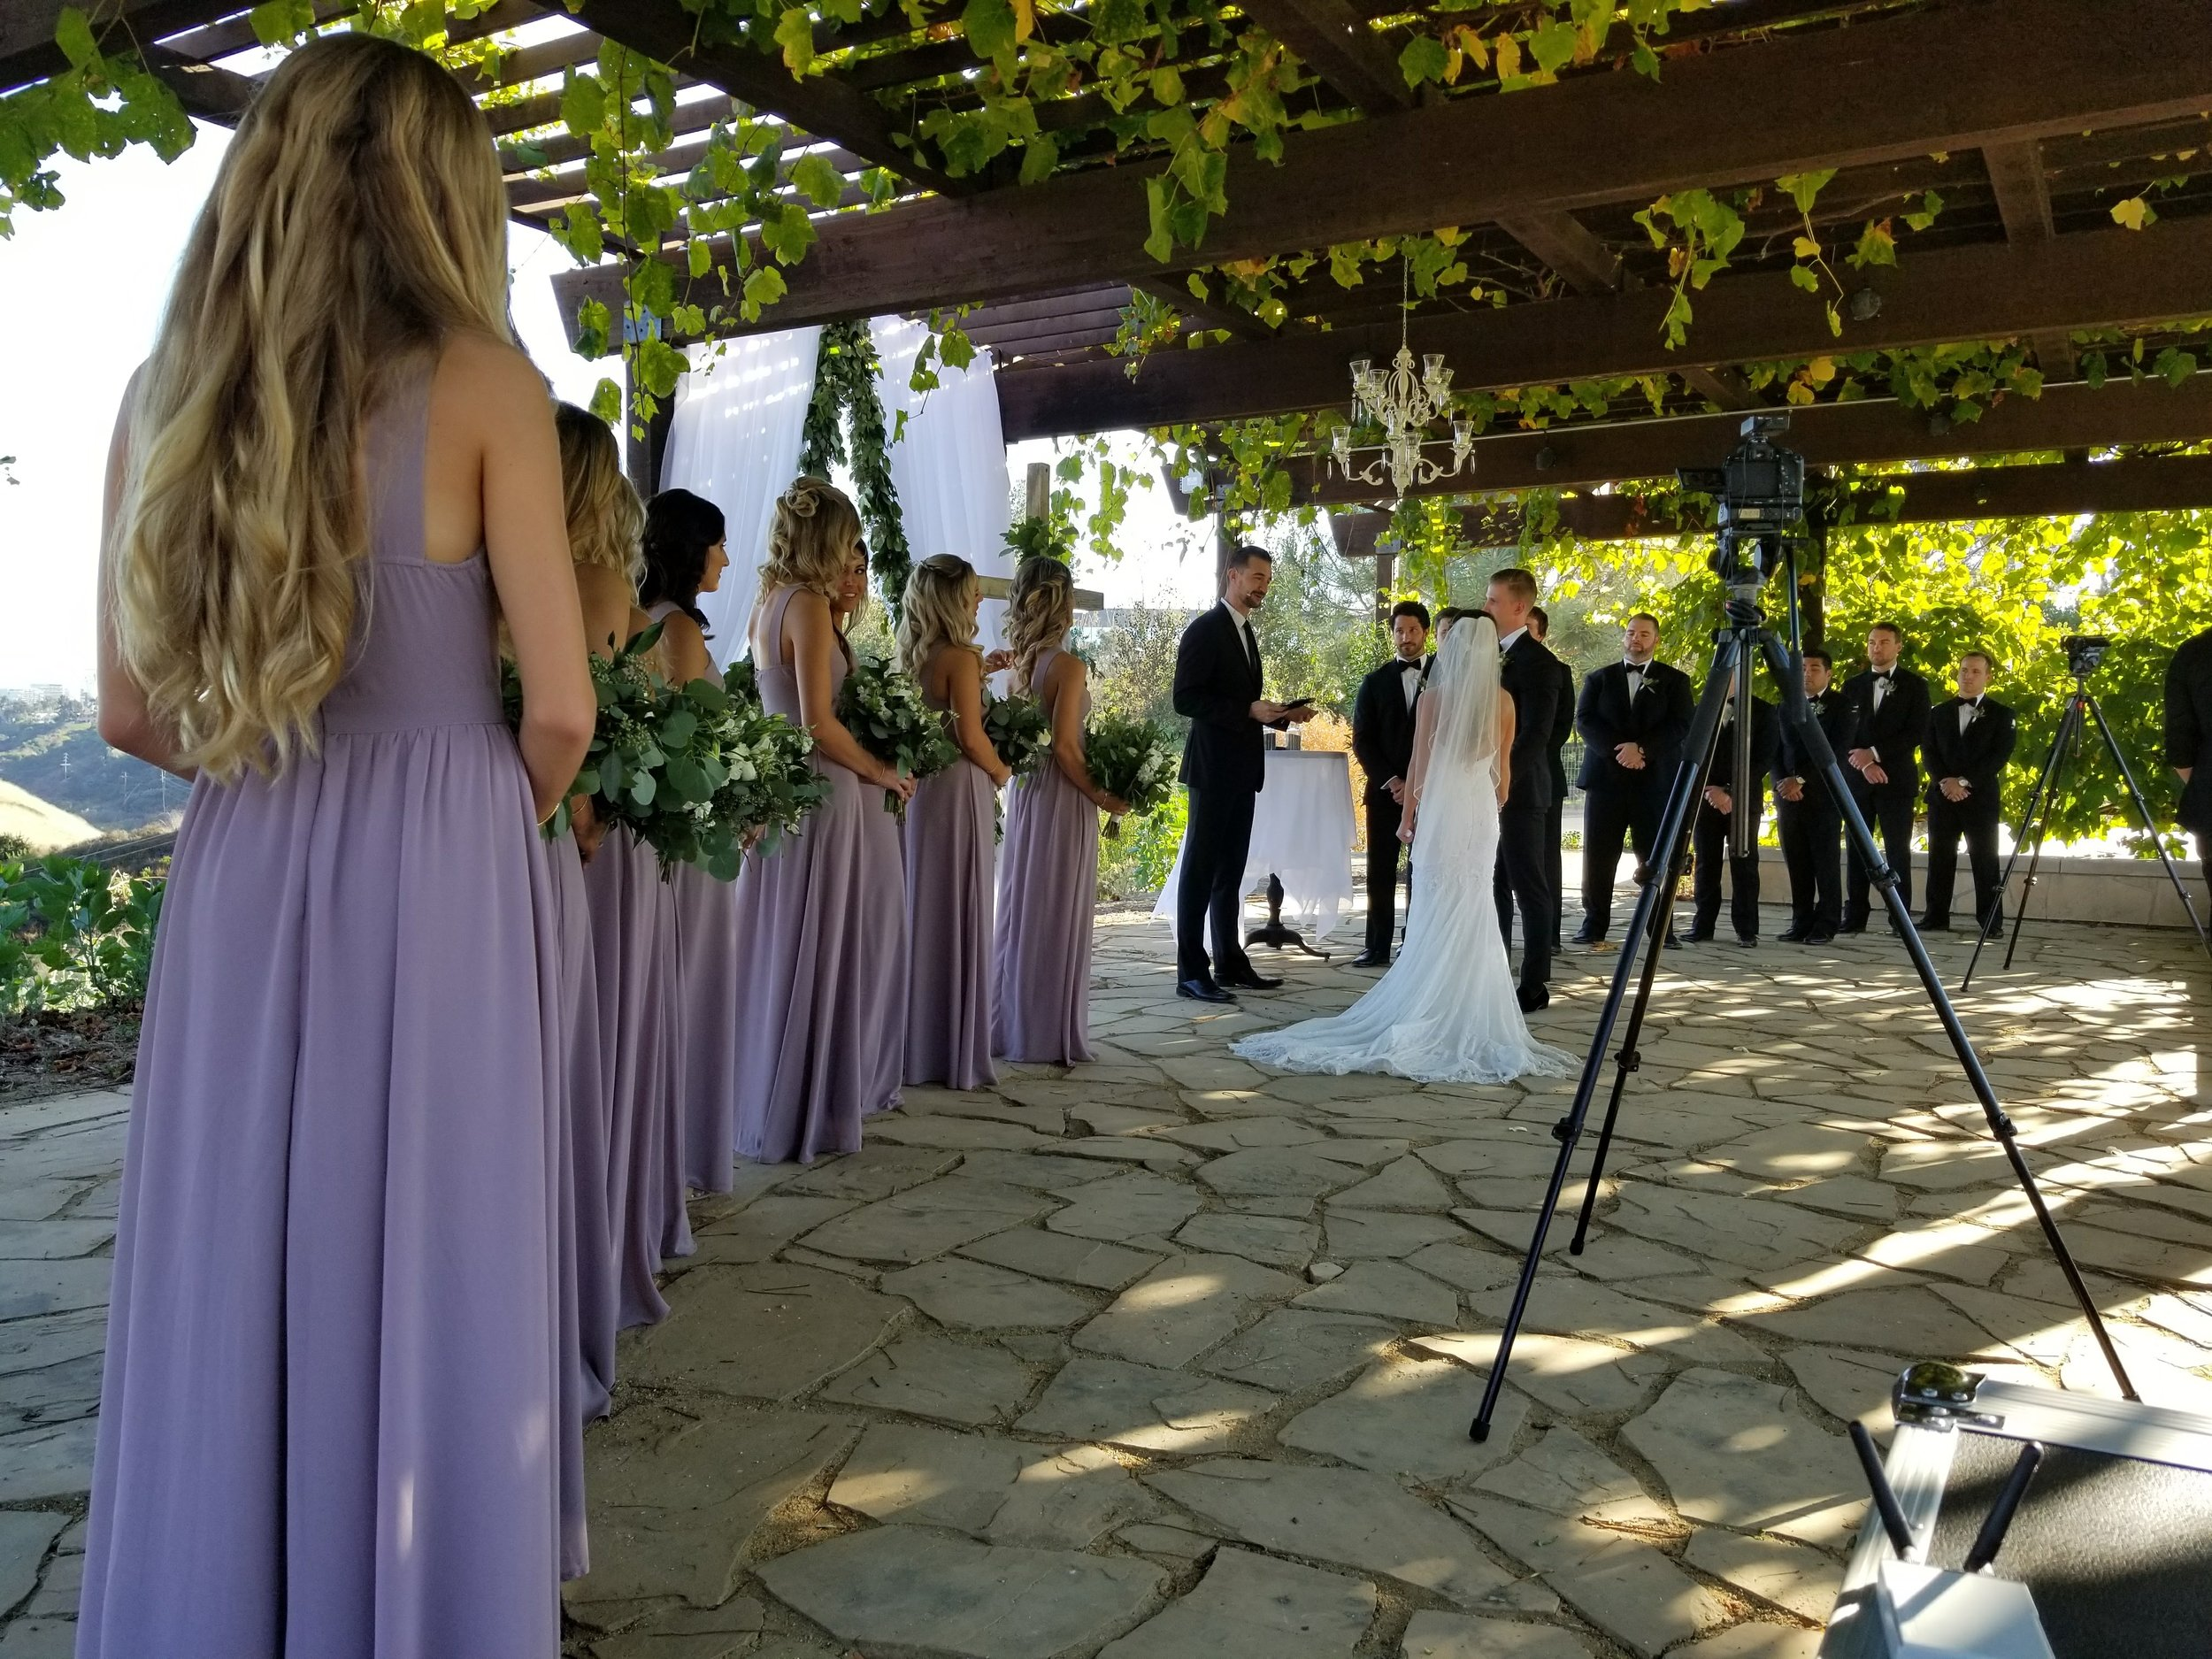 Courtney and Nick's ceremony at Green Acre on October 7, 2017.